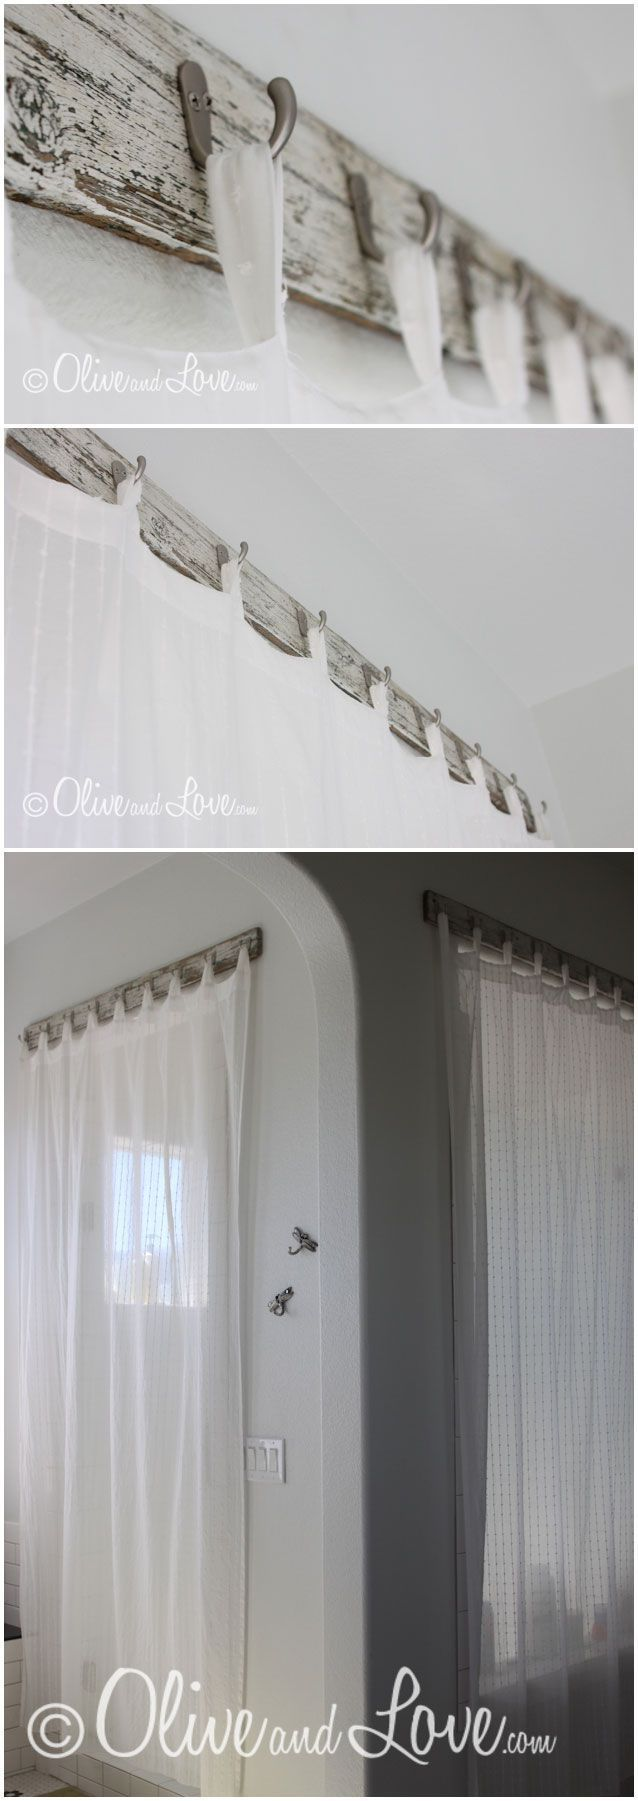 Hang Curtains With Hooks- great for a rustic look with tab tops...gonna use the pallet boards for this.